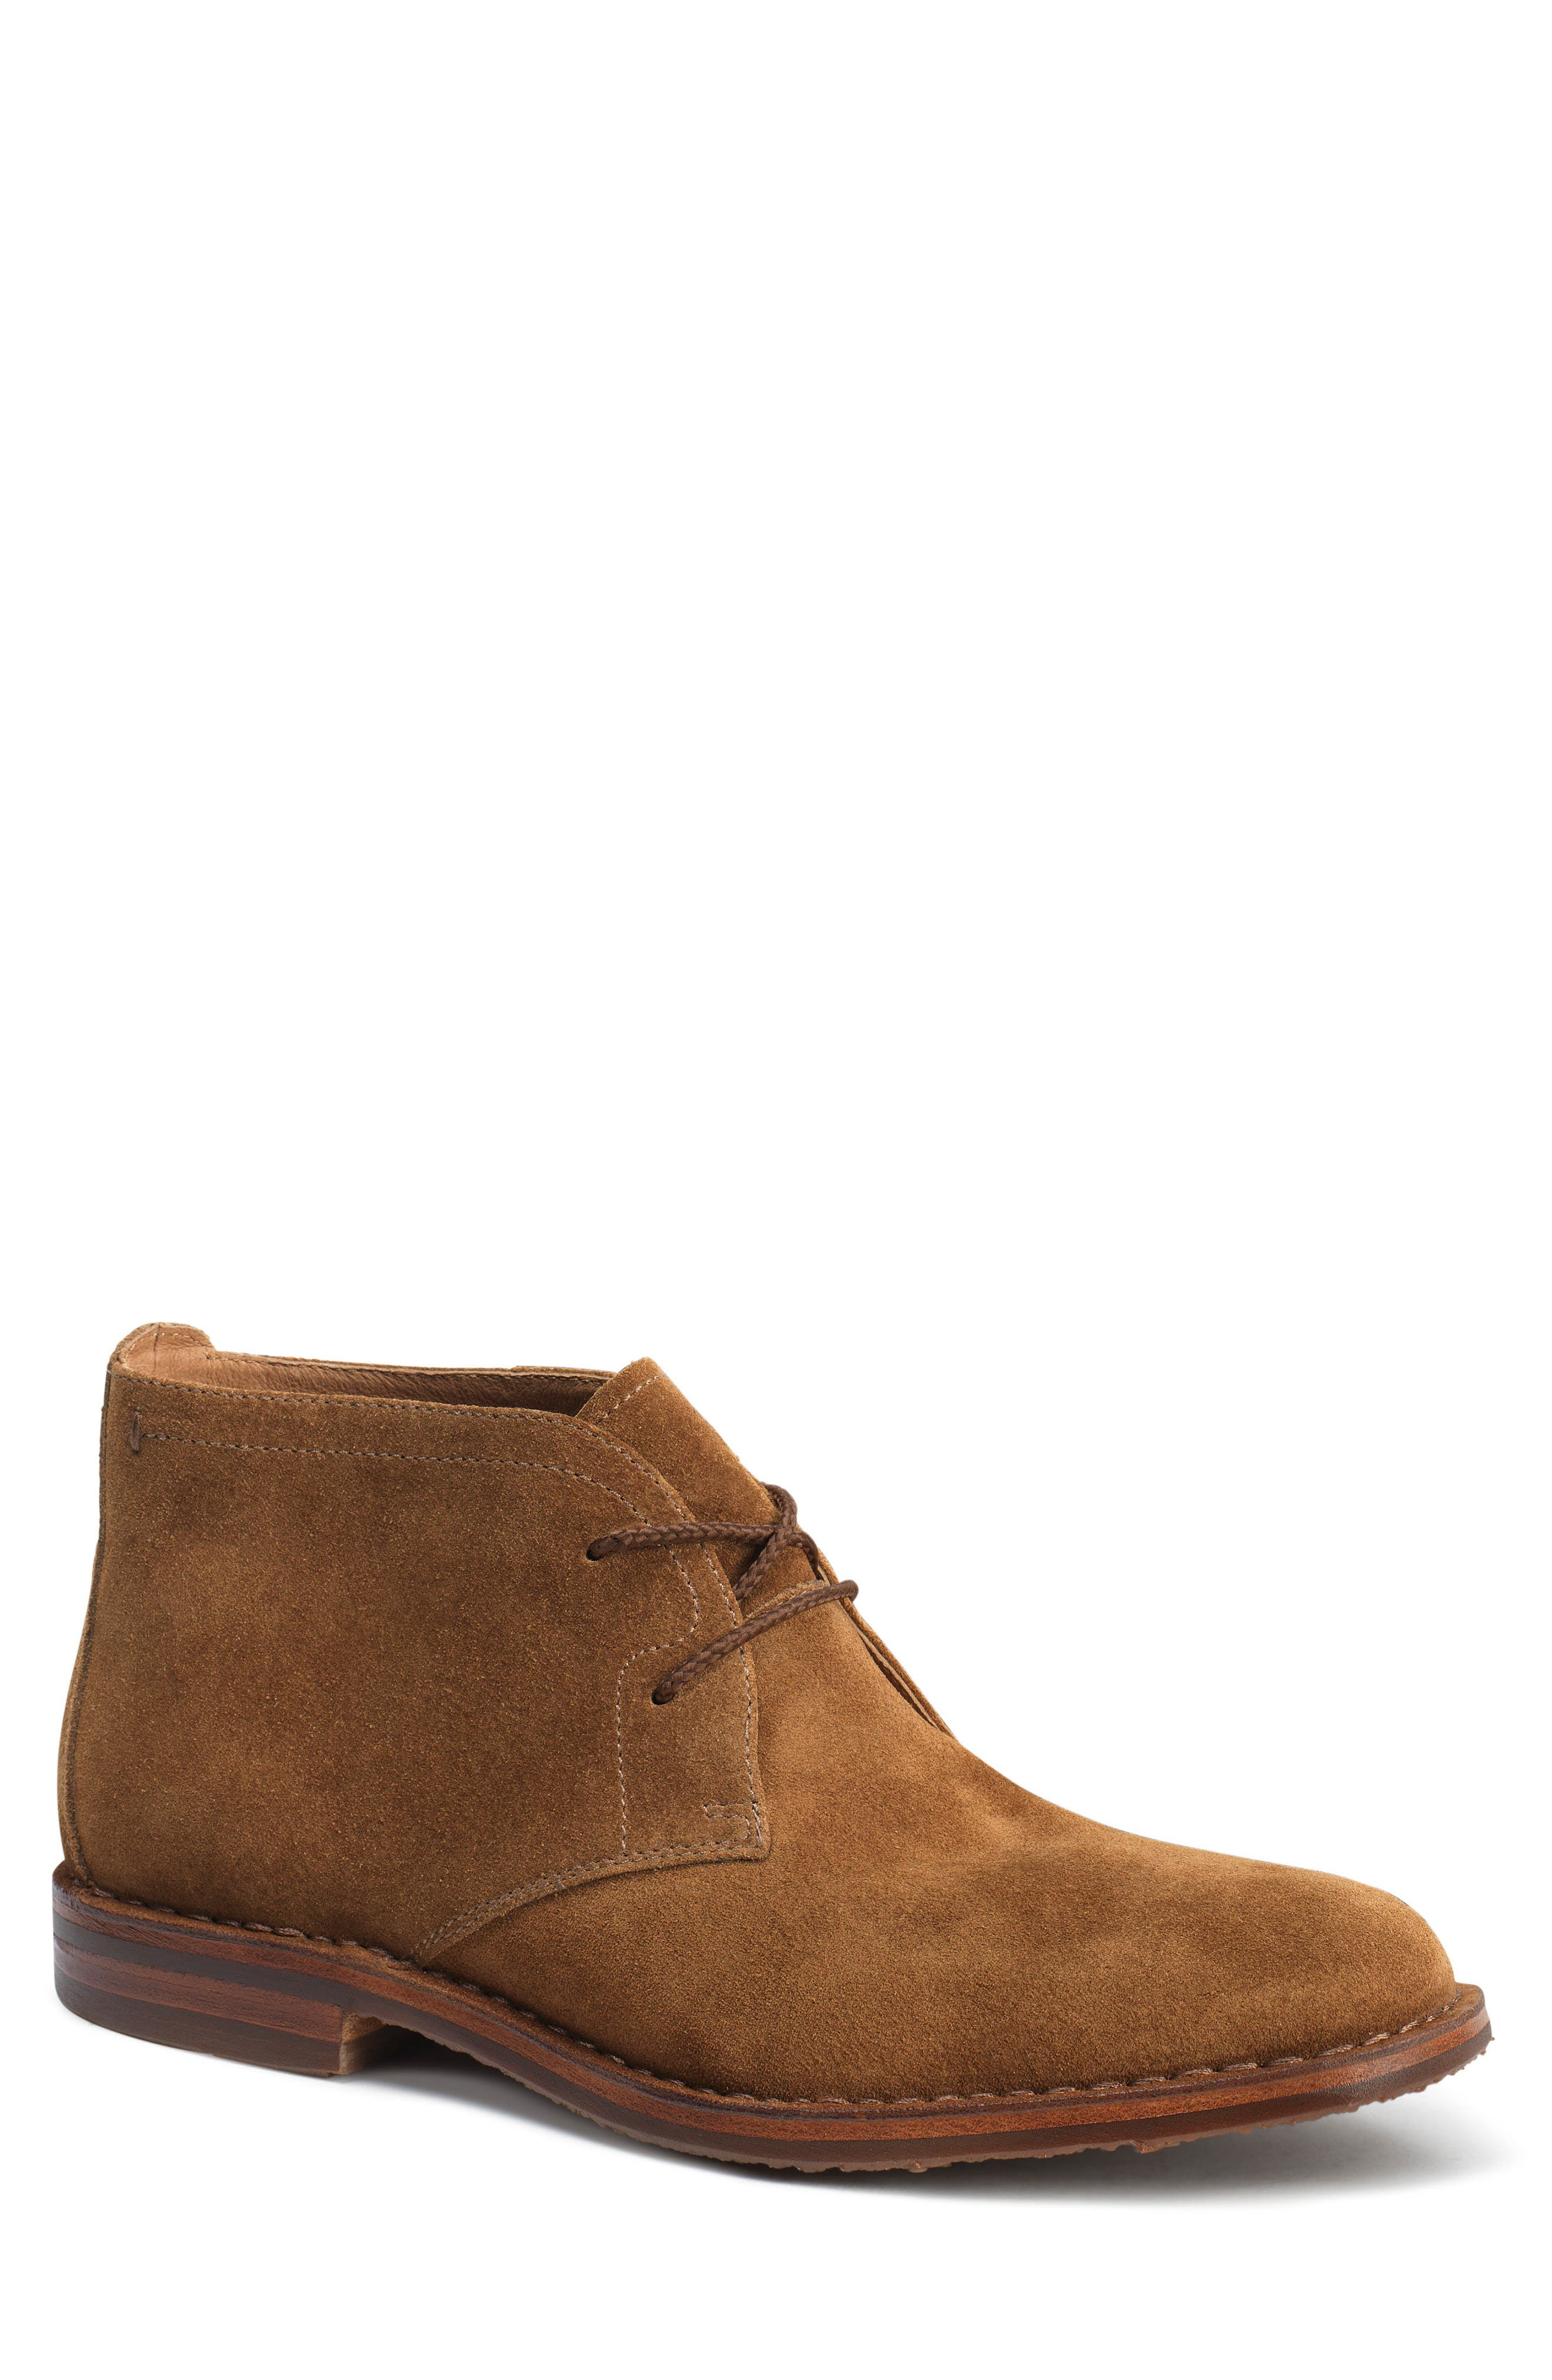 TRASK, 'Brady' Chukka Boot, Main thumbnail 1, color, SNUFF SUEDE